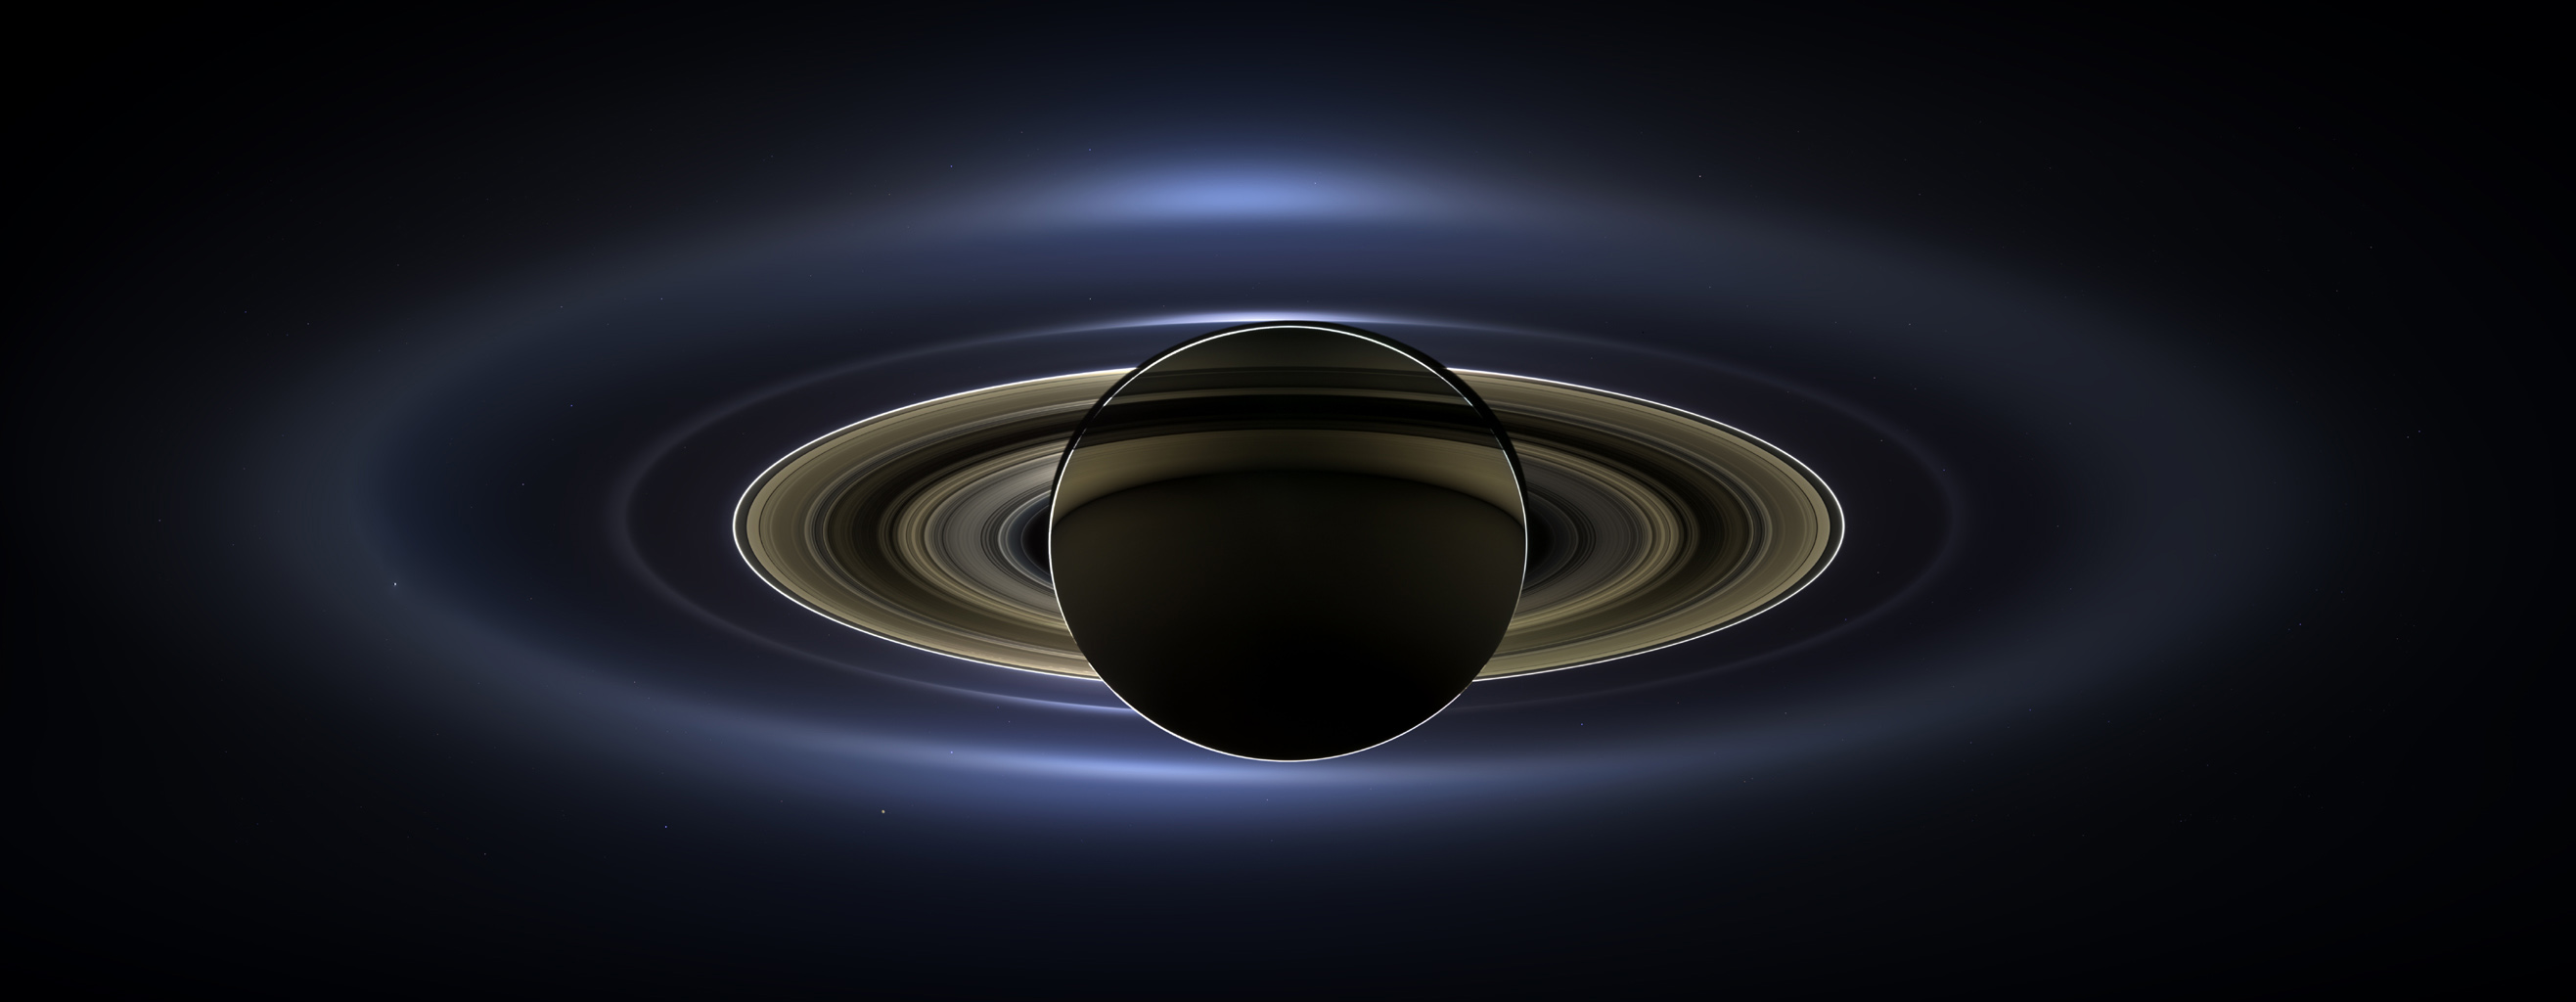 On July 19, 2013, Cassini slipped into Saturn's shadow and turned to image the planet, seven of its moons, its inner rings and Earth.